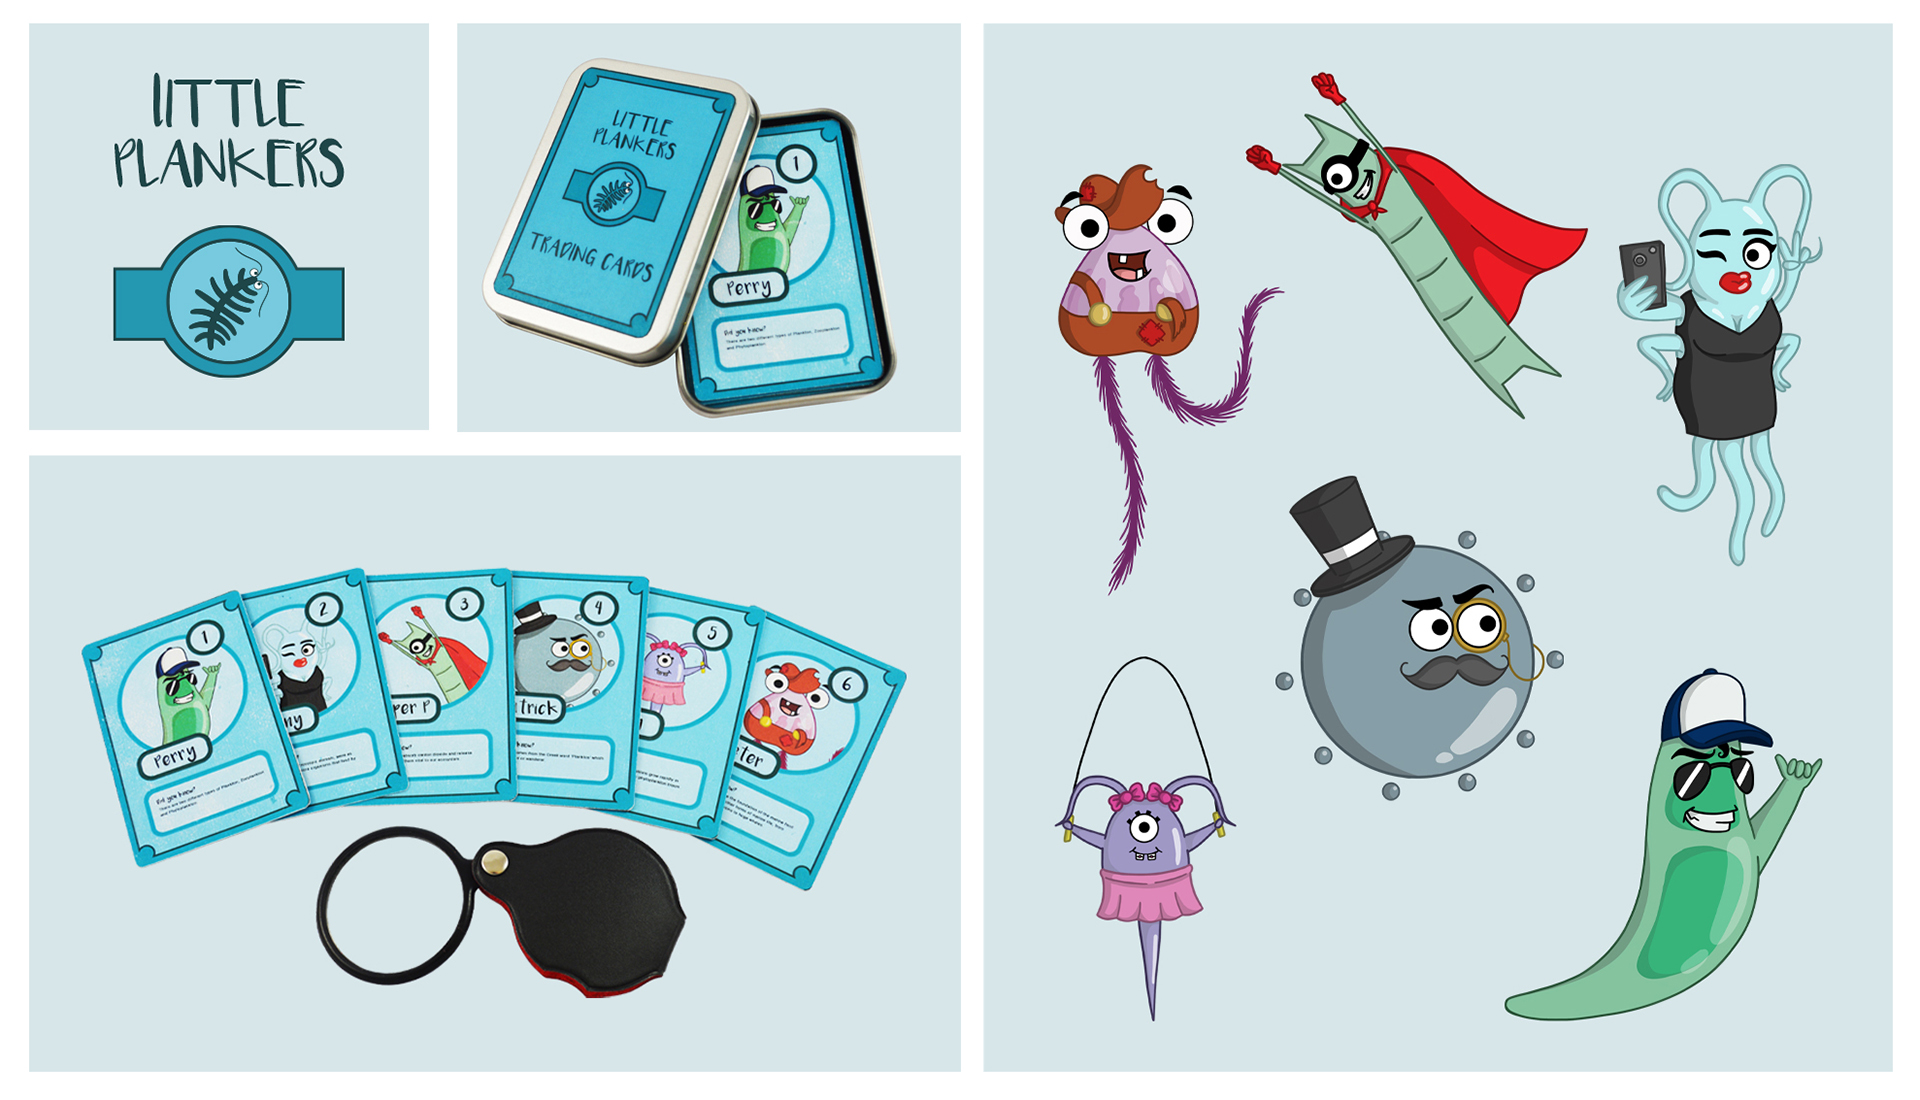 4 images showing a logo and trading cards with illustrated creatures.